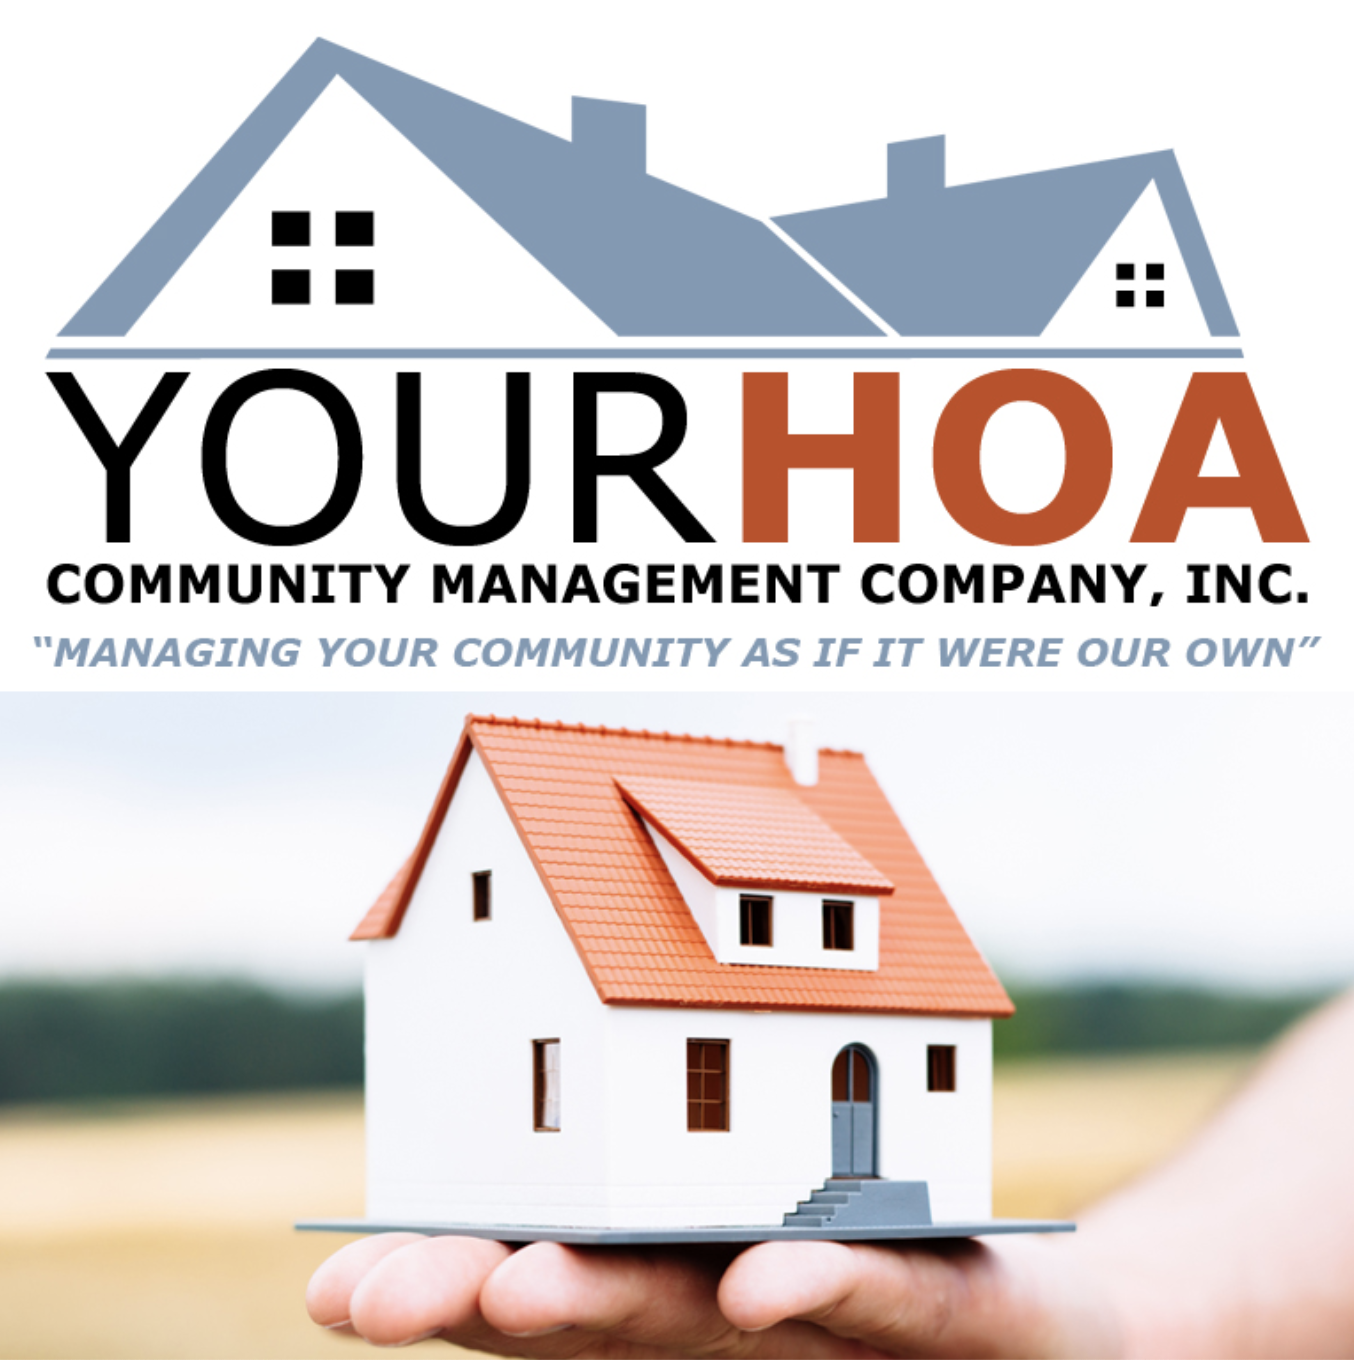 Your HOA Community Management Company, Inc.